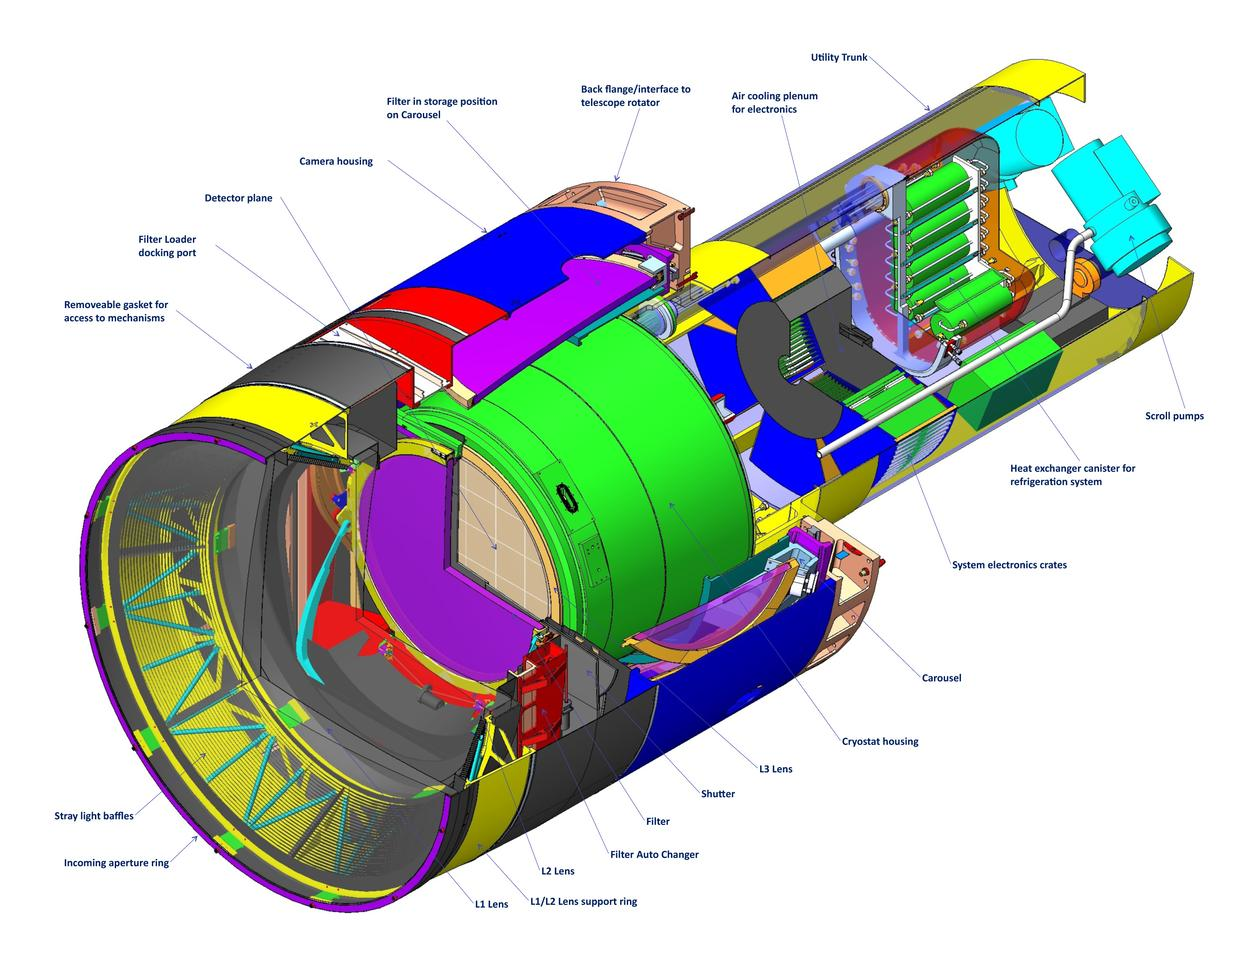 An illustrated diagram of the LSST camera